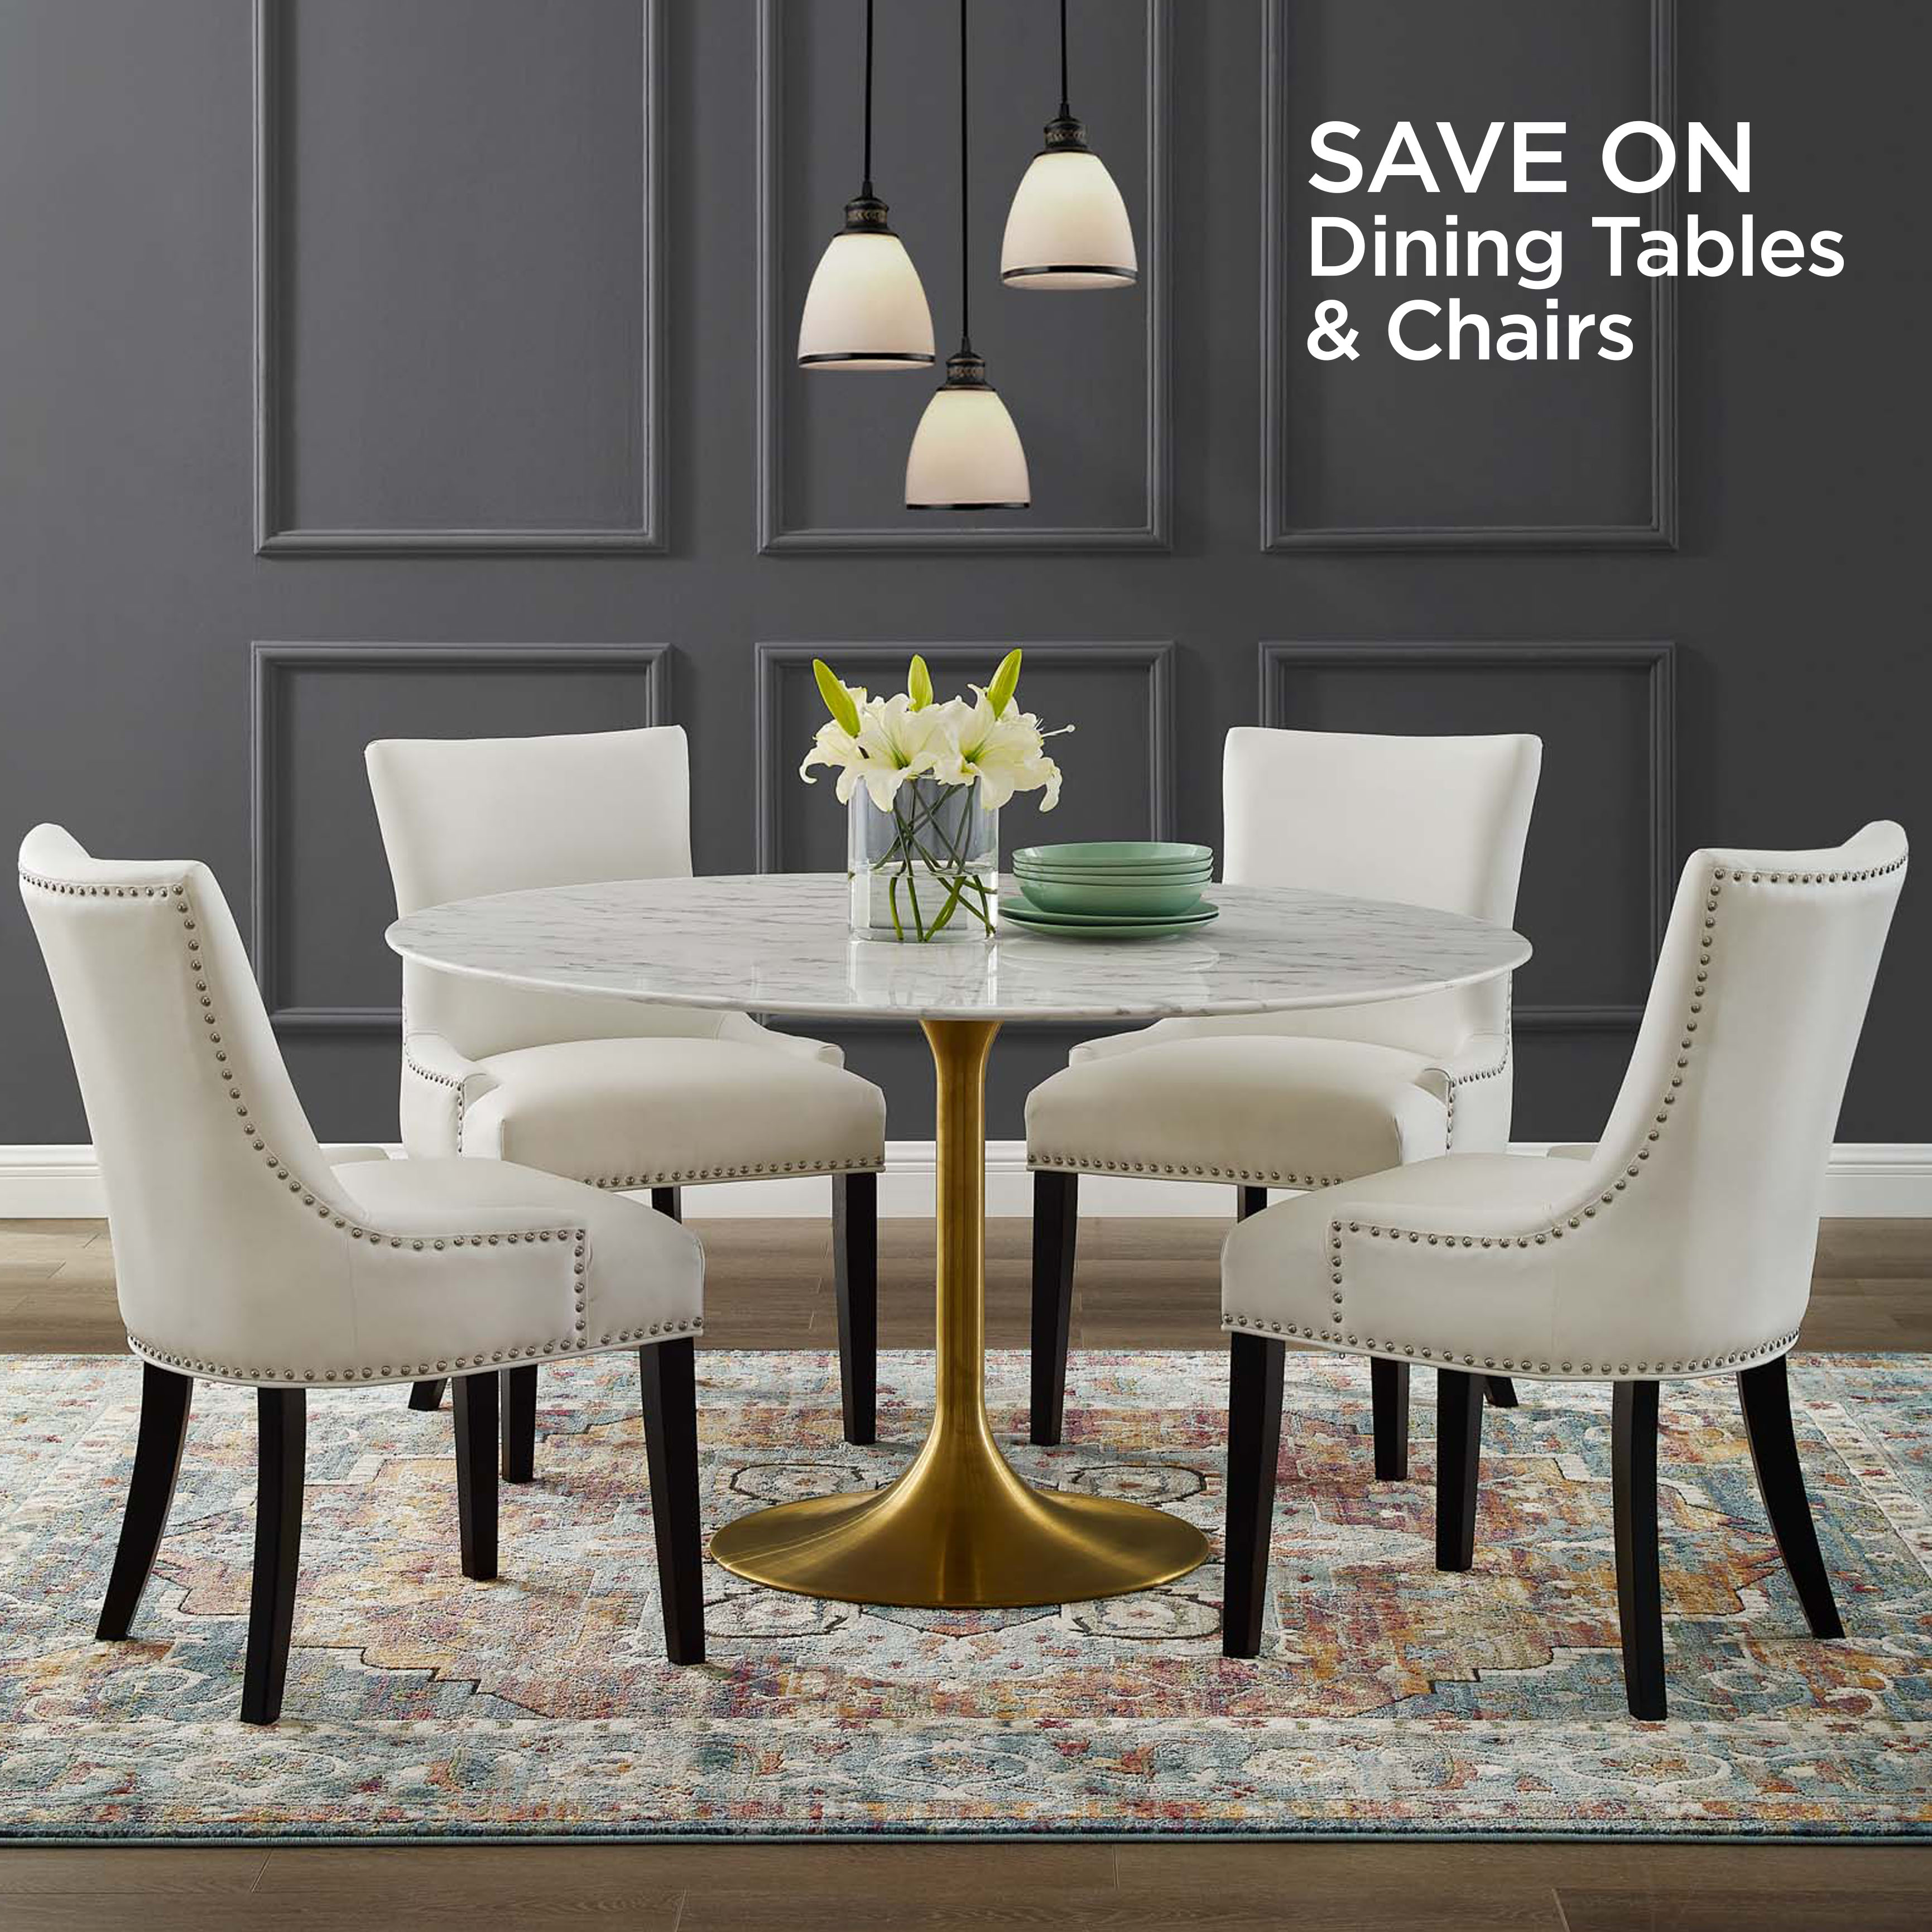 Save on Dining Tables and Chairs